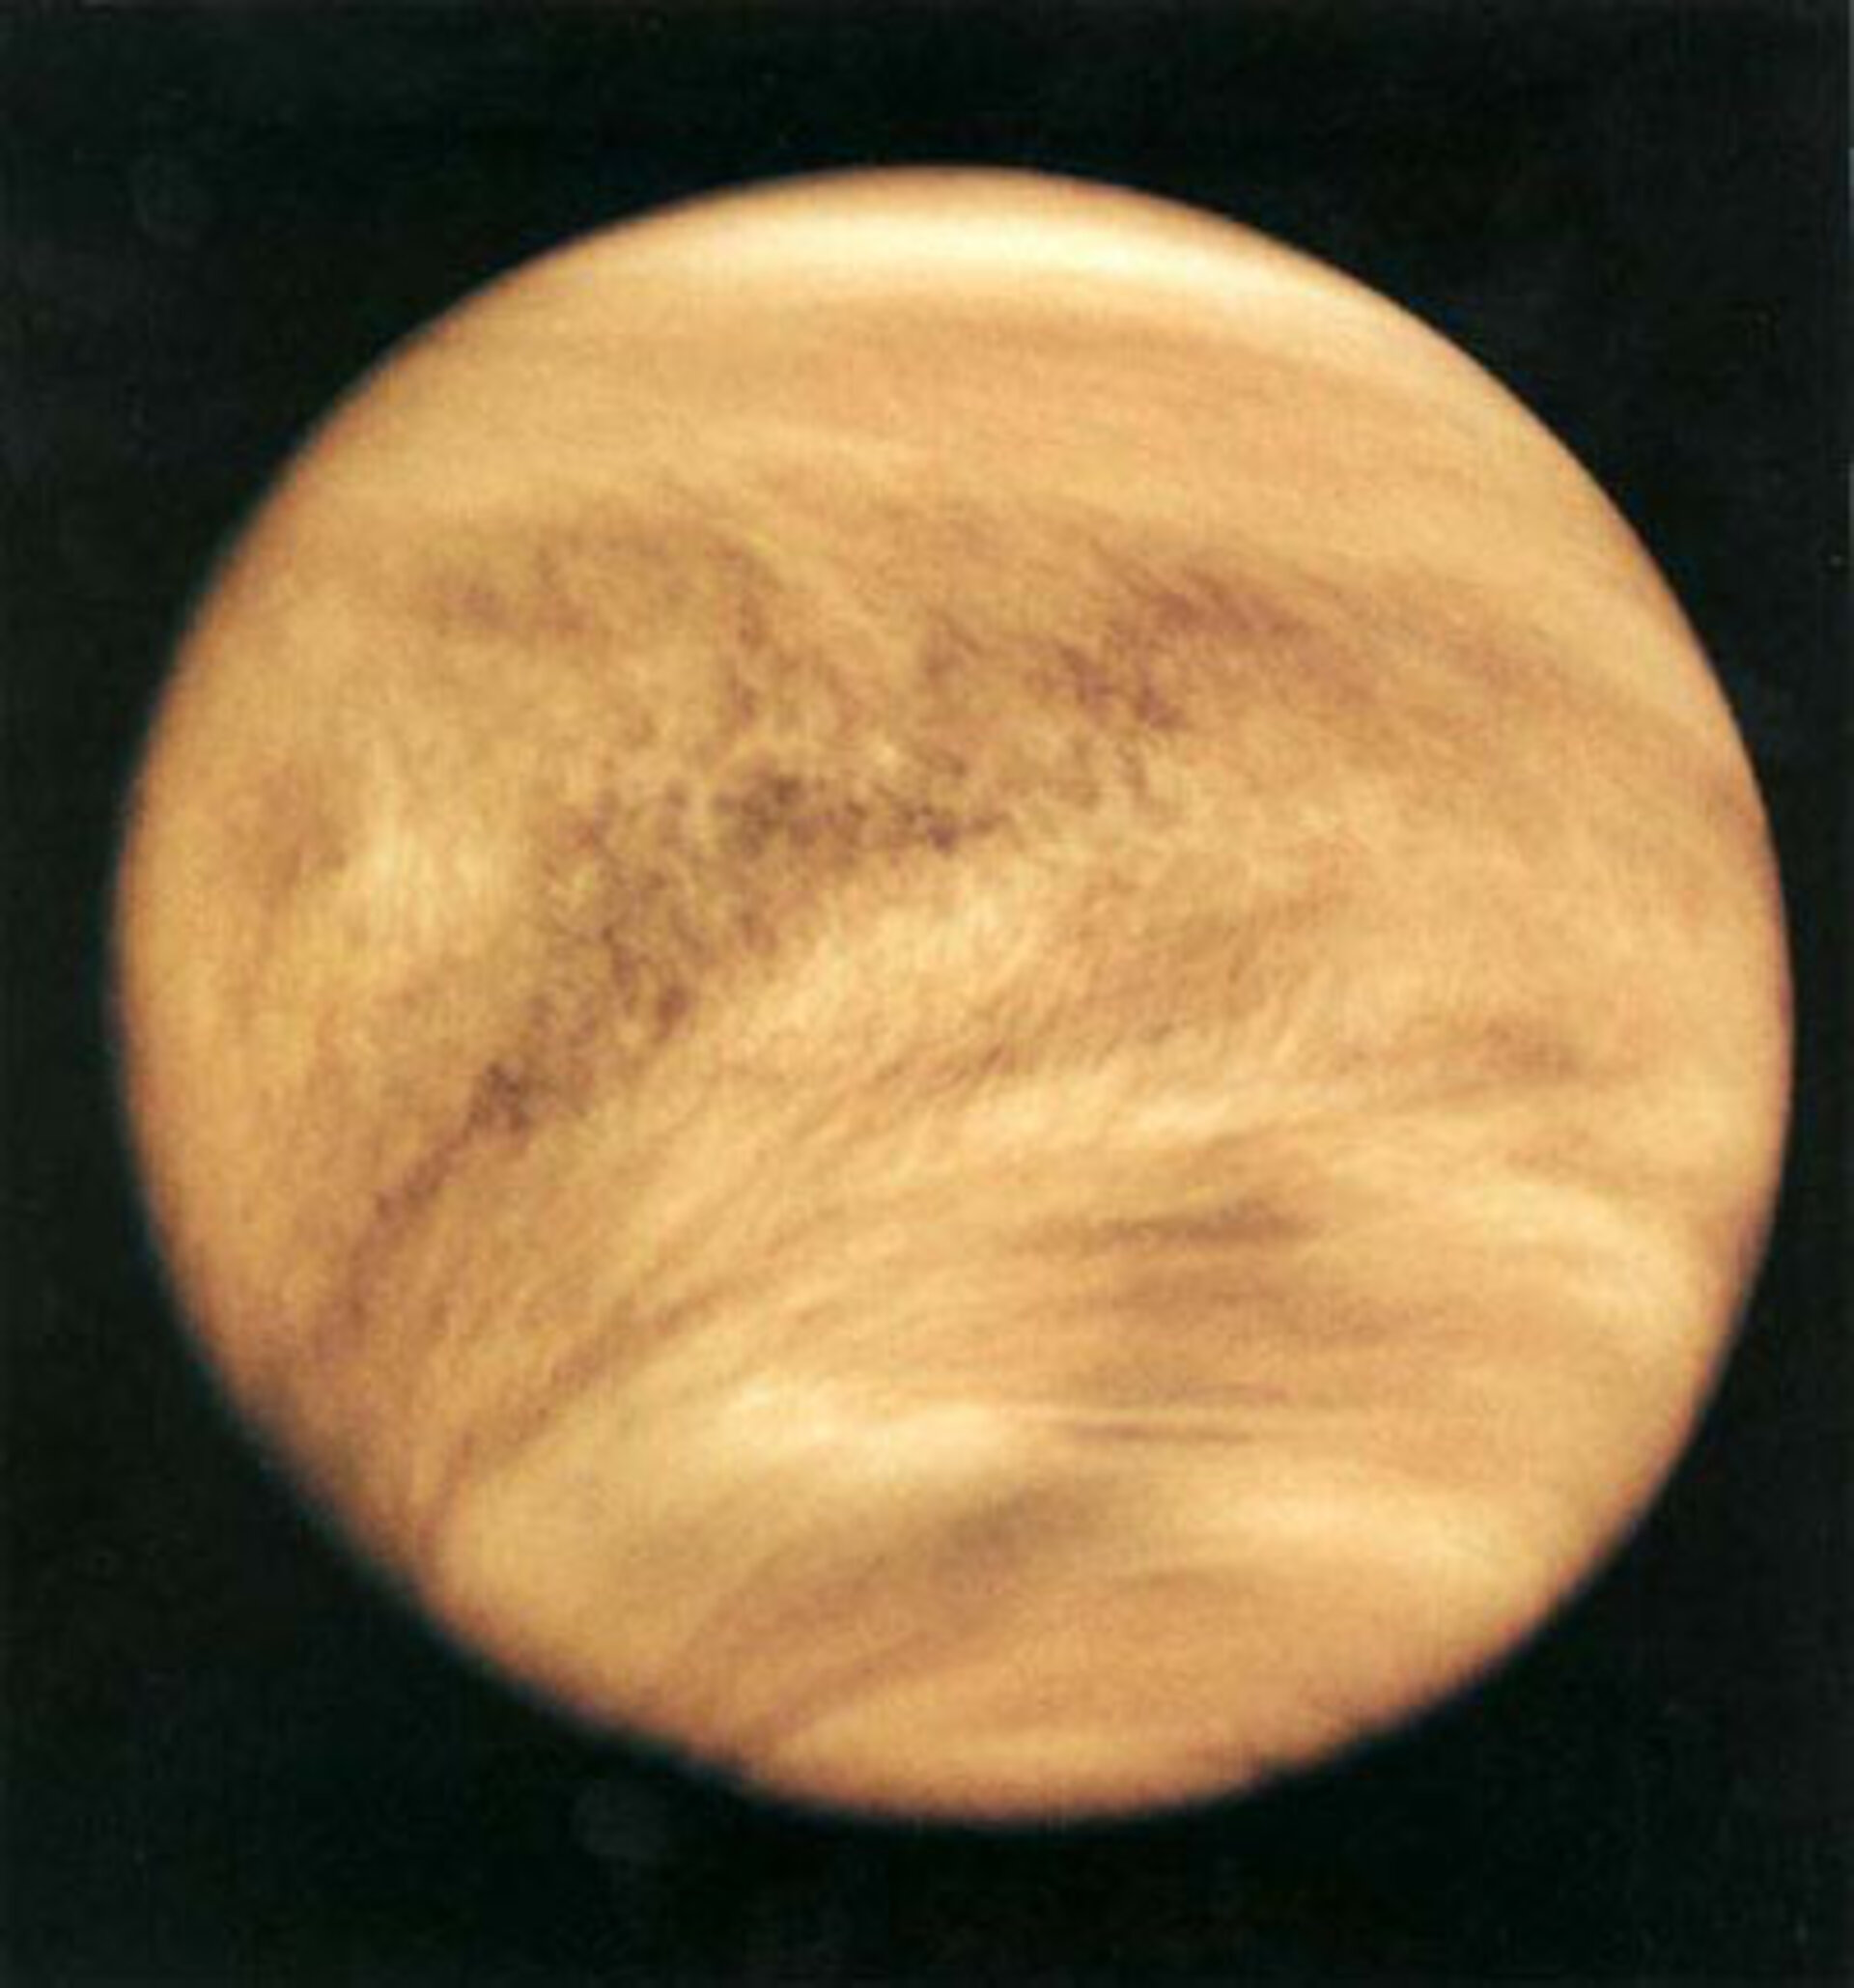 Mariner 10 image of Venus cloud tops